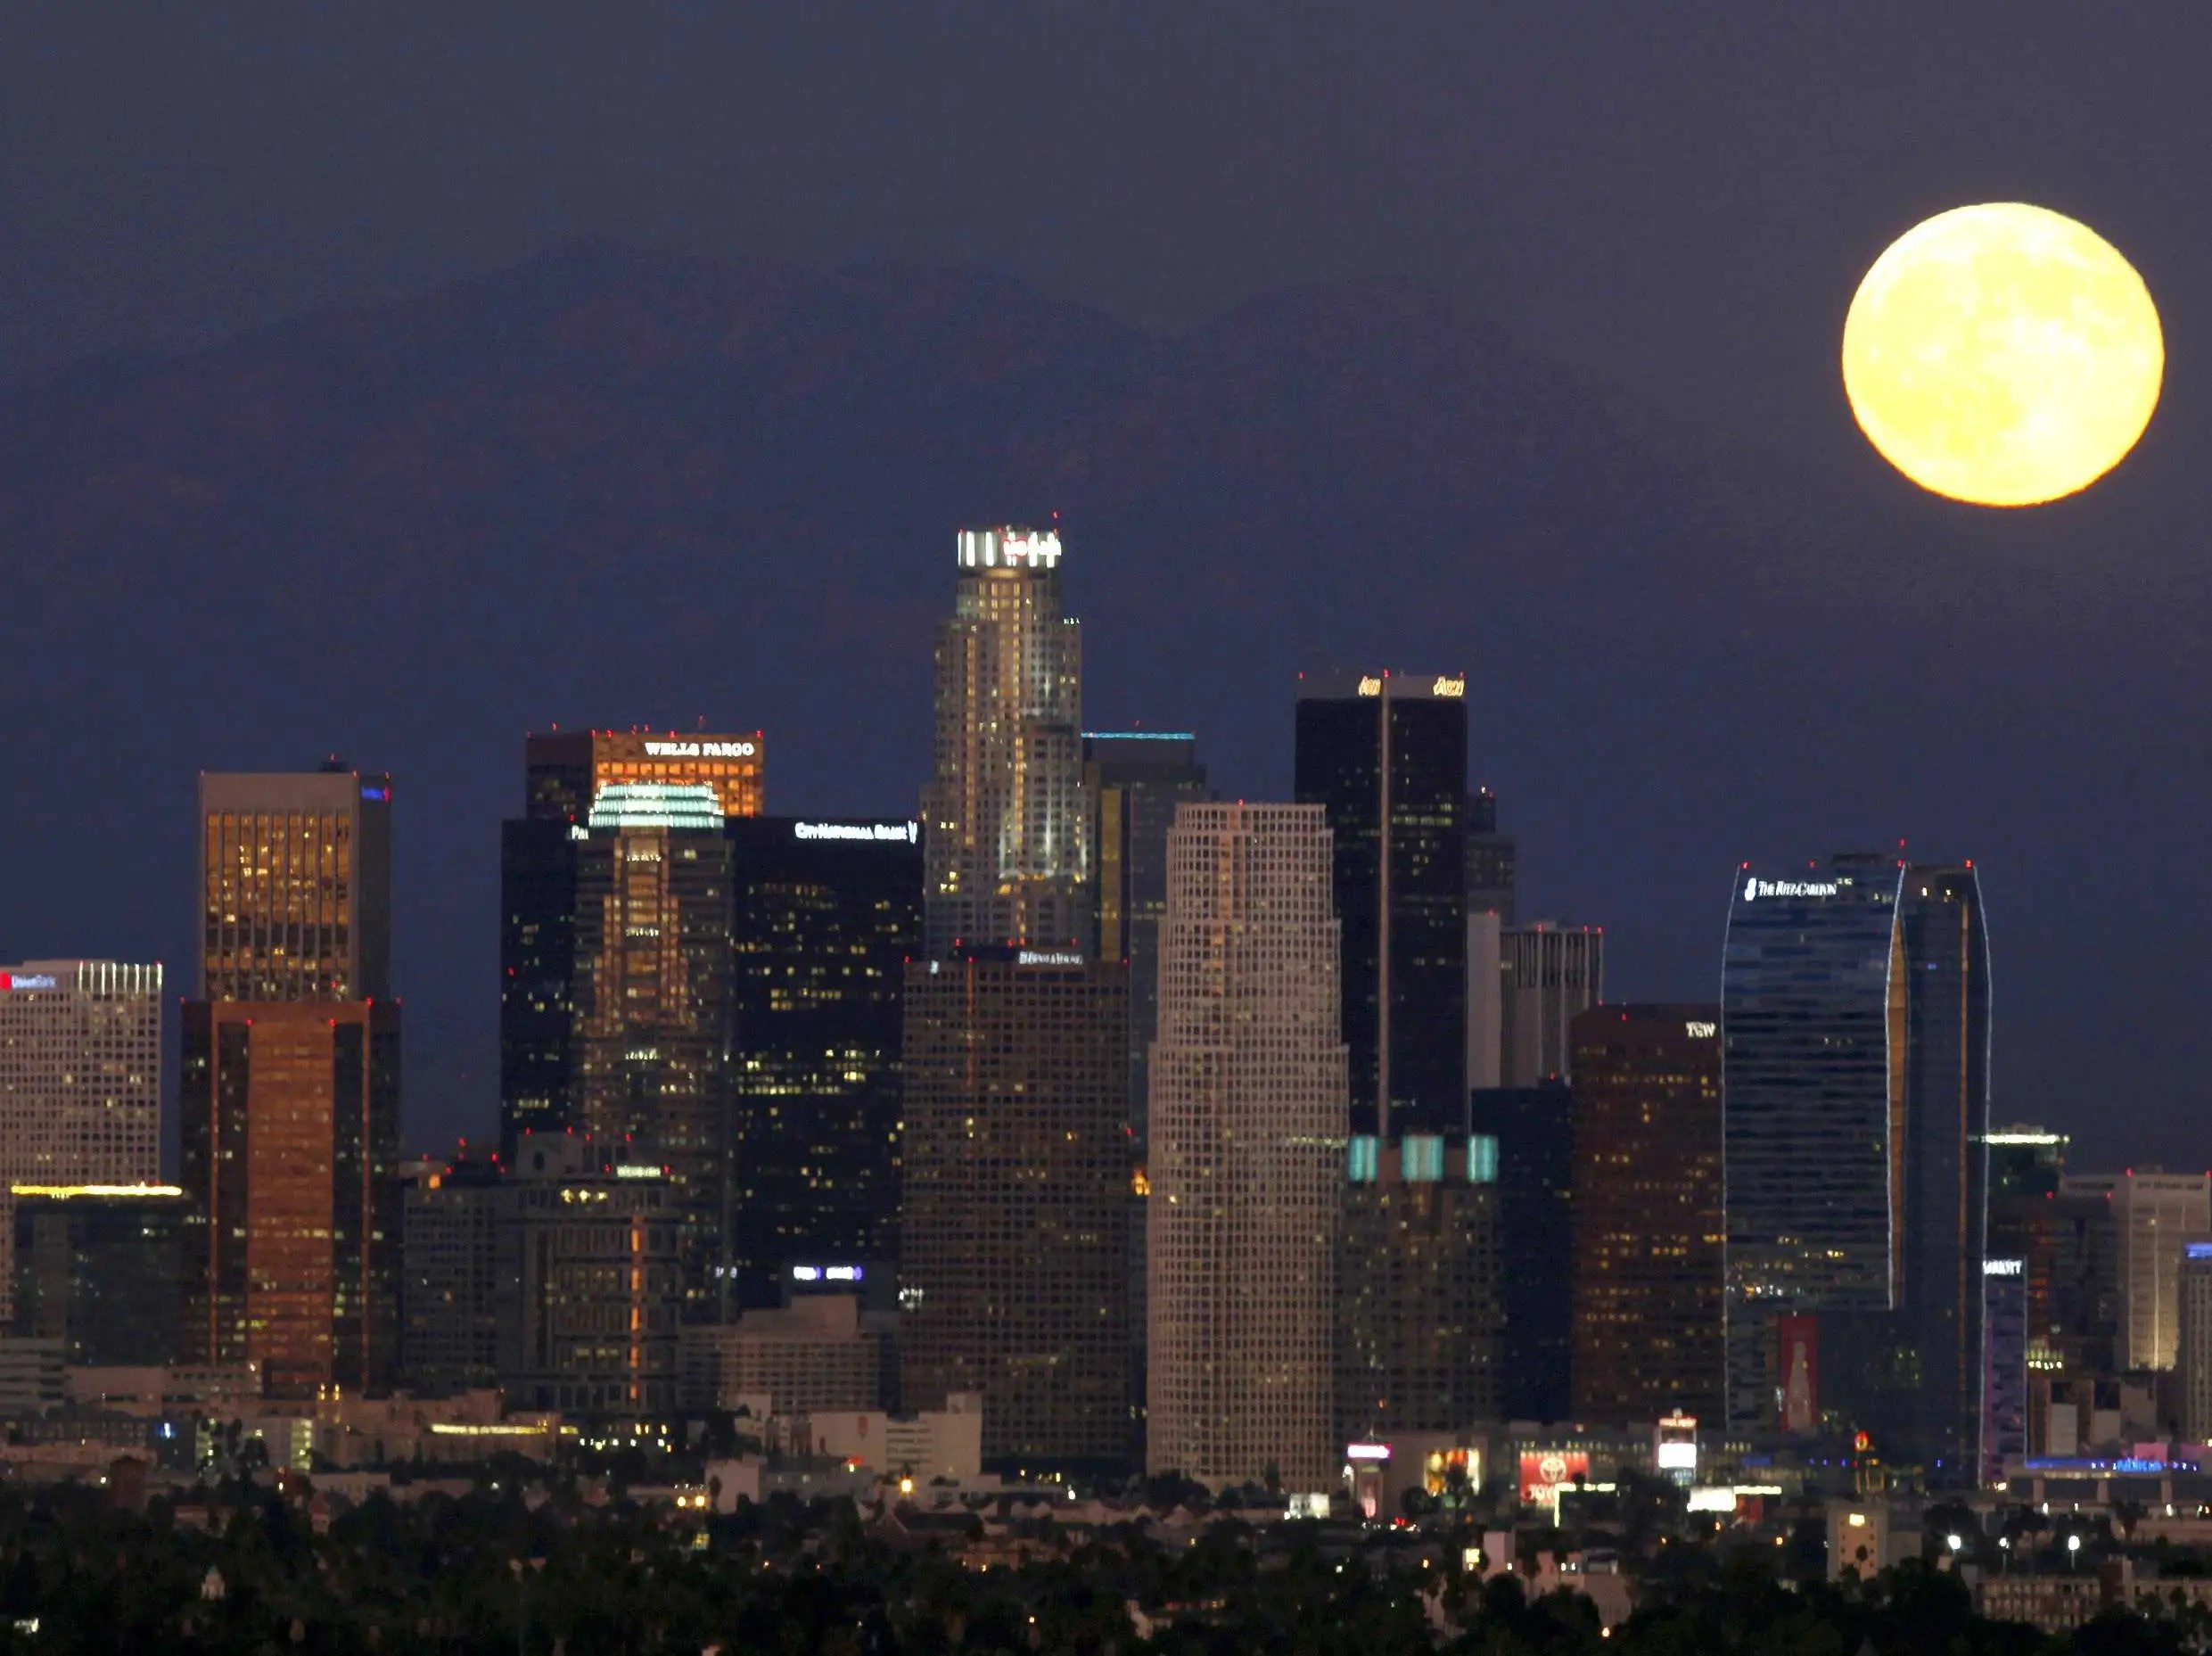 LOS ANGELES: You'd have to earn at least $72,127 to buy an average home.